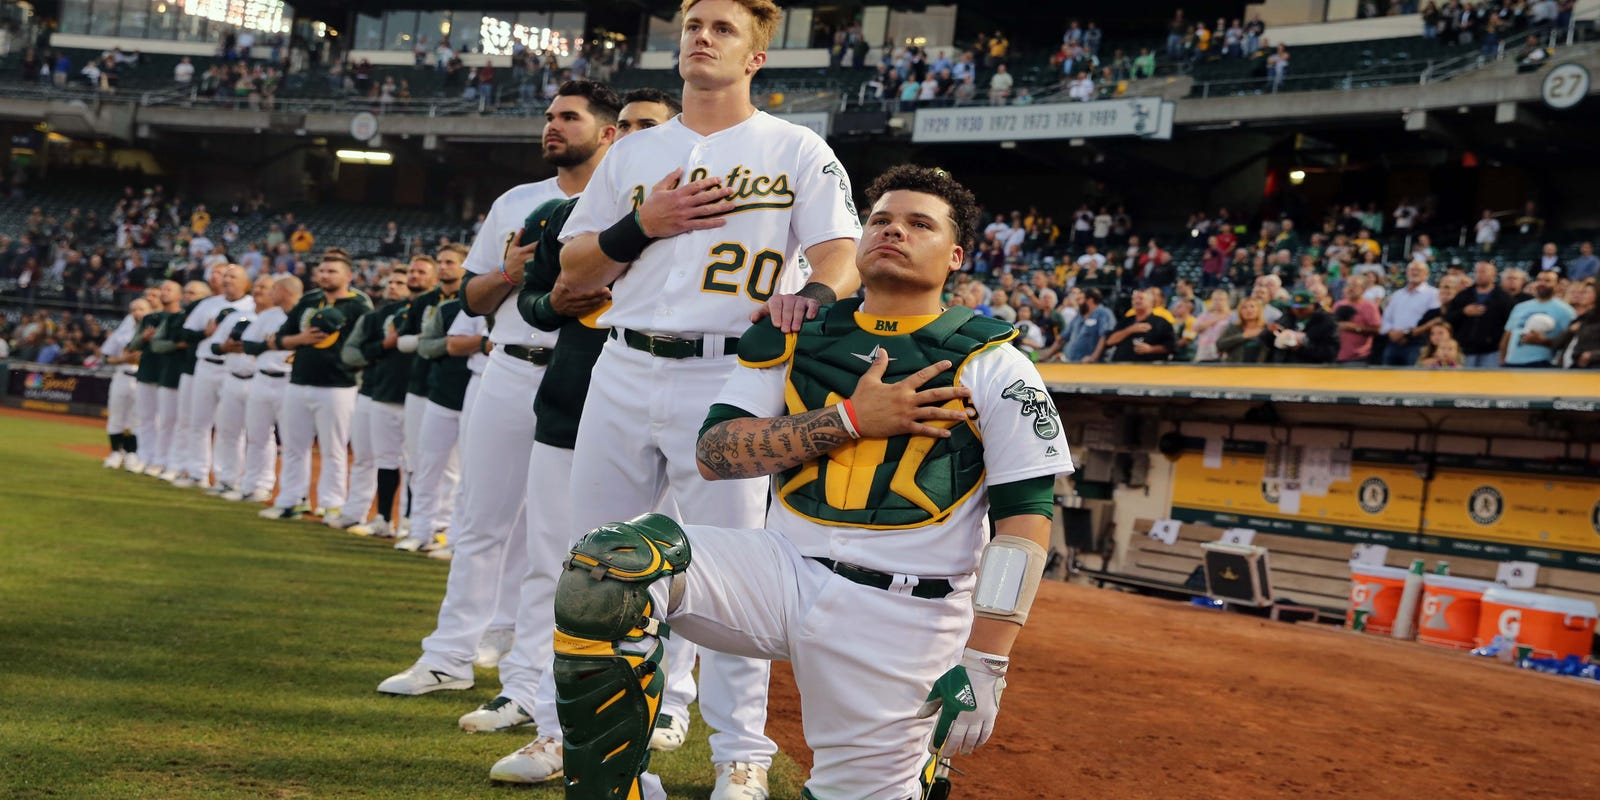 cf742a649e9 Athletics catcher Bruce Maxwell says he won t kneel for national anthem  this season